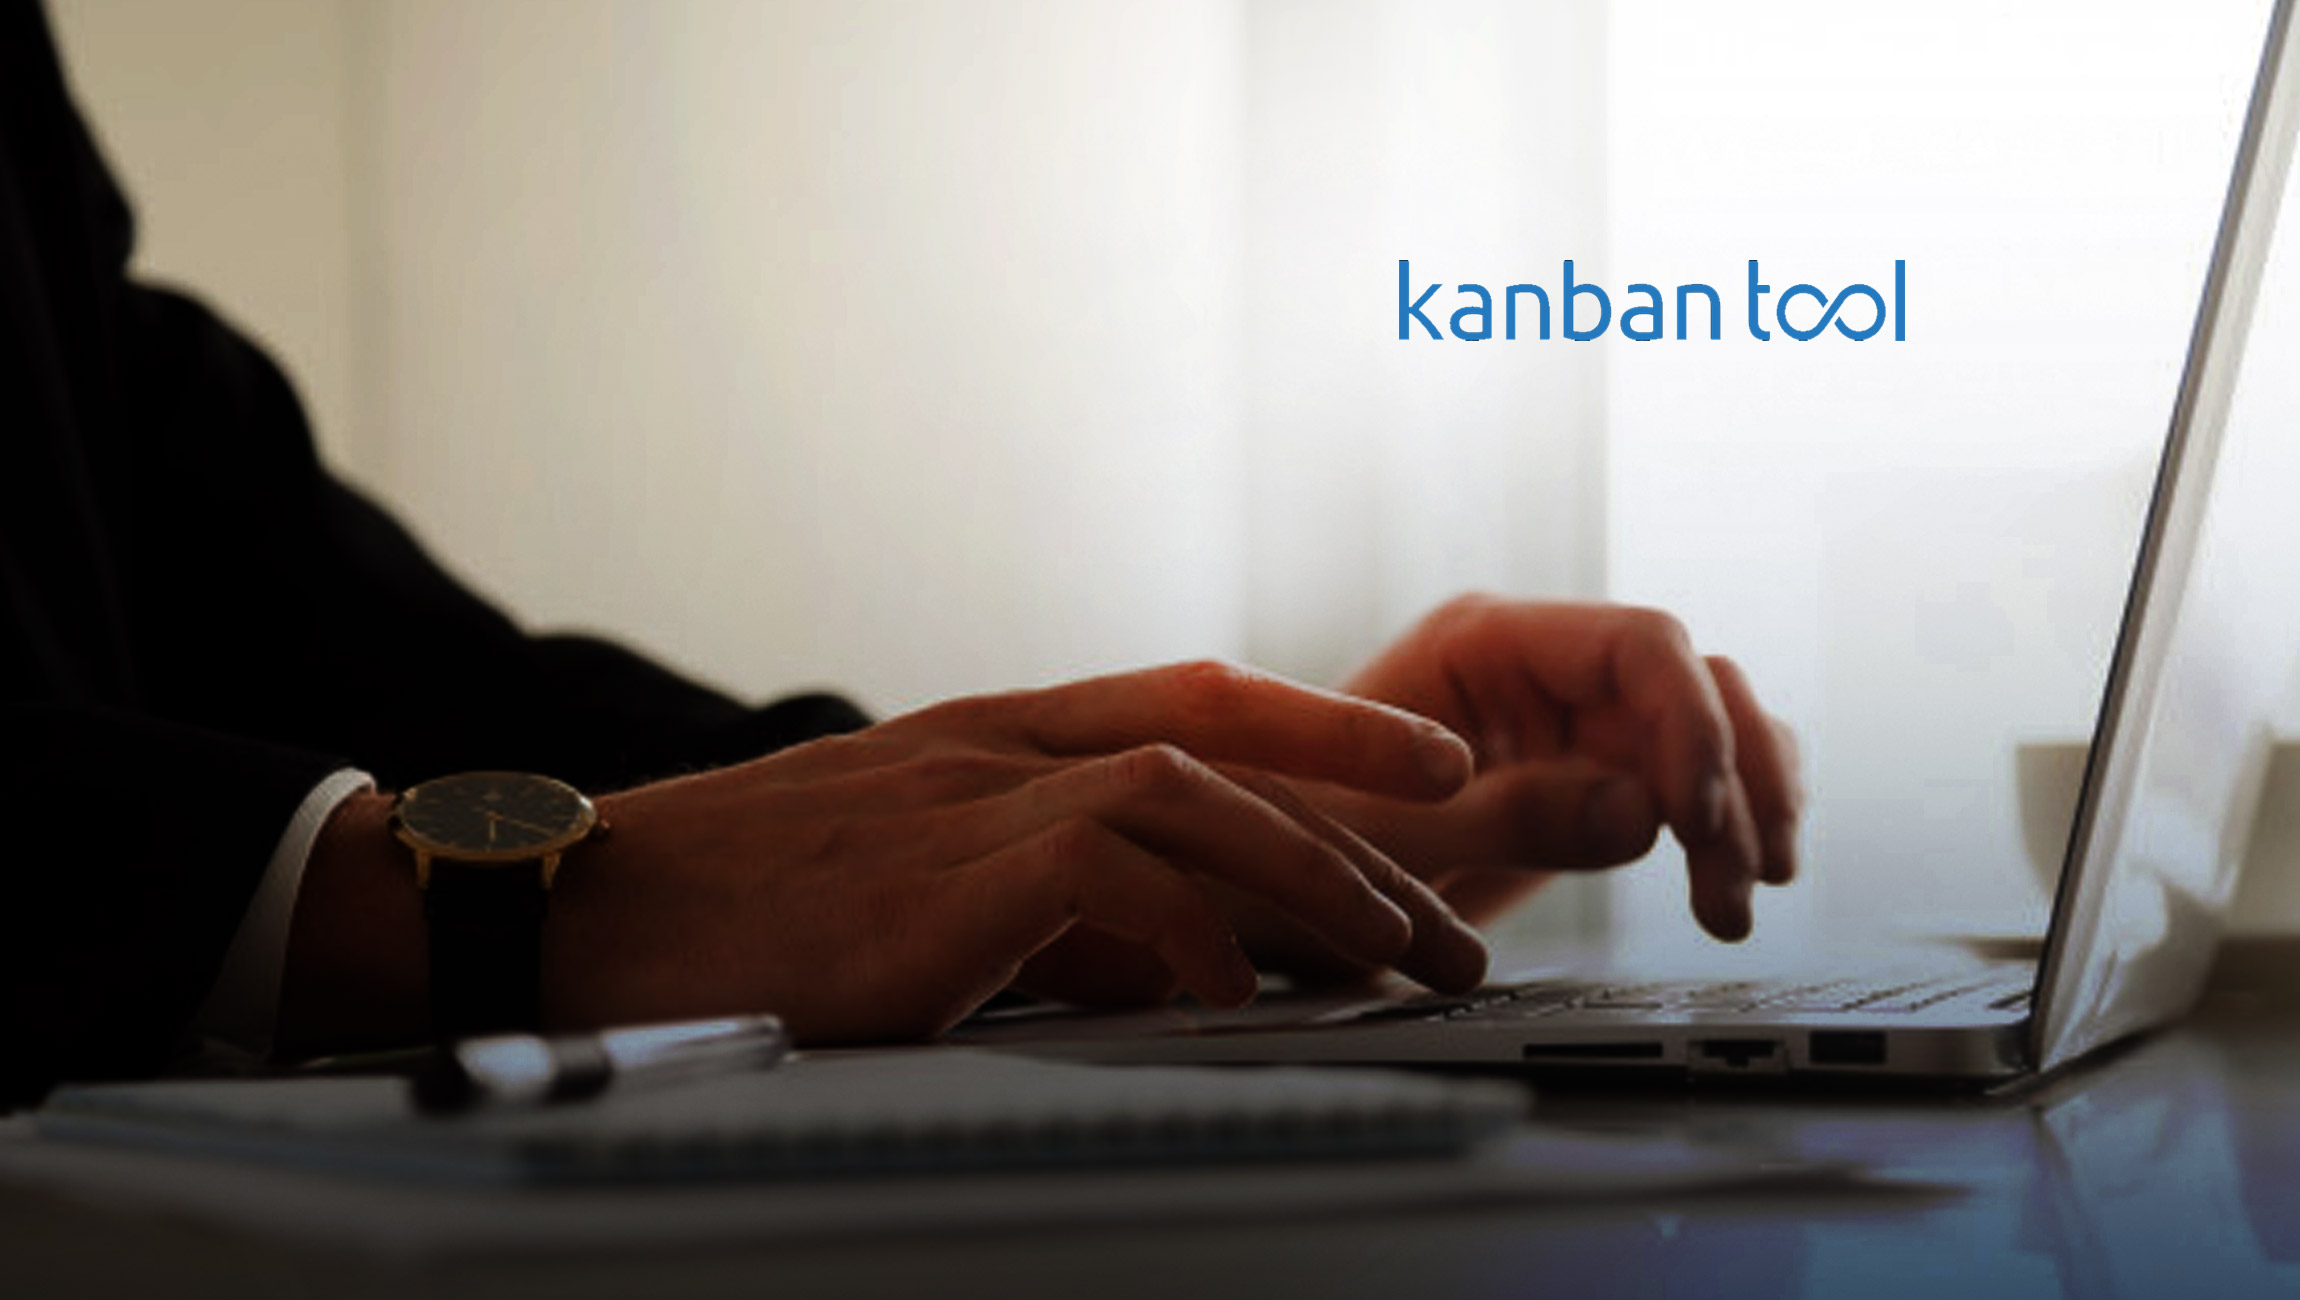 Shore Lab's Kanban Tool Provides Visual Project Management for Remote Teams